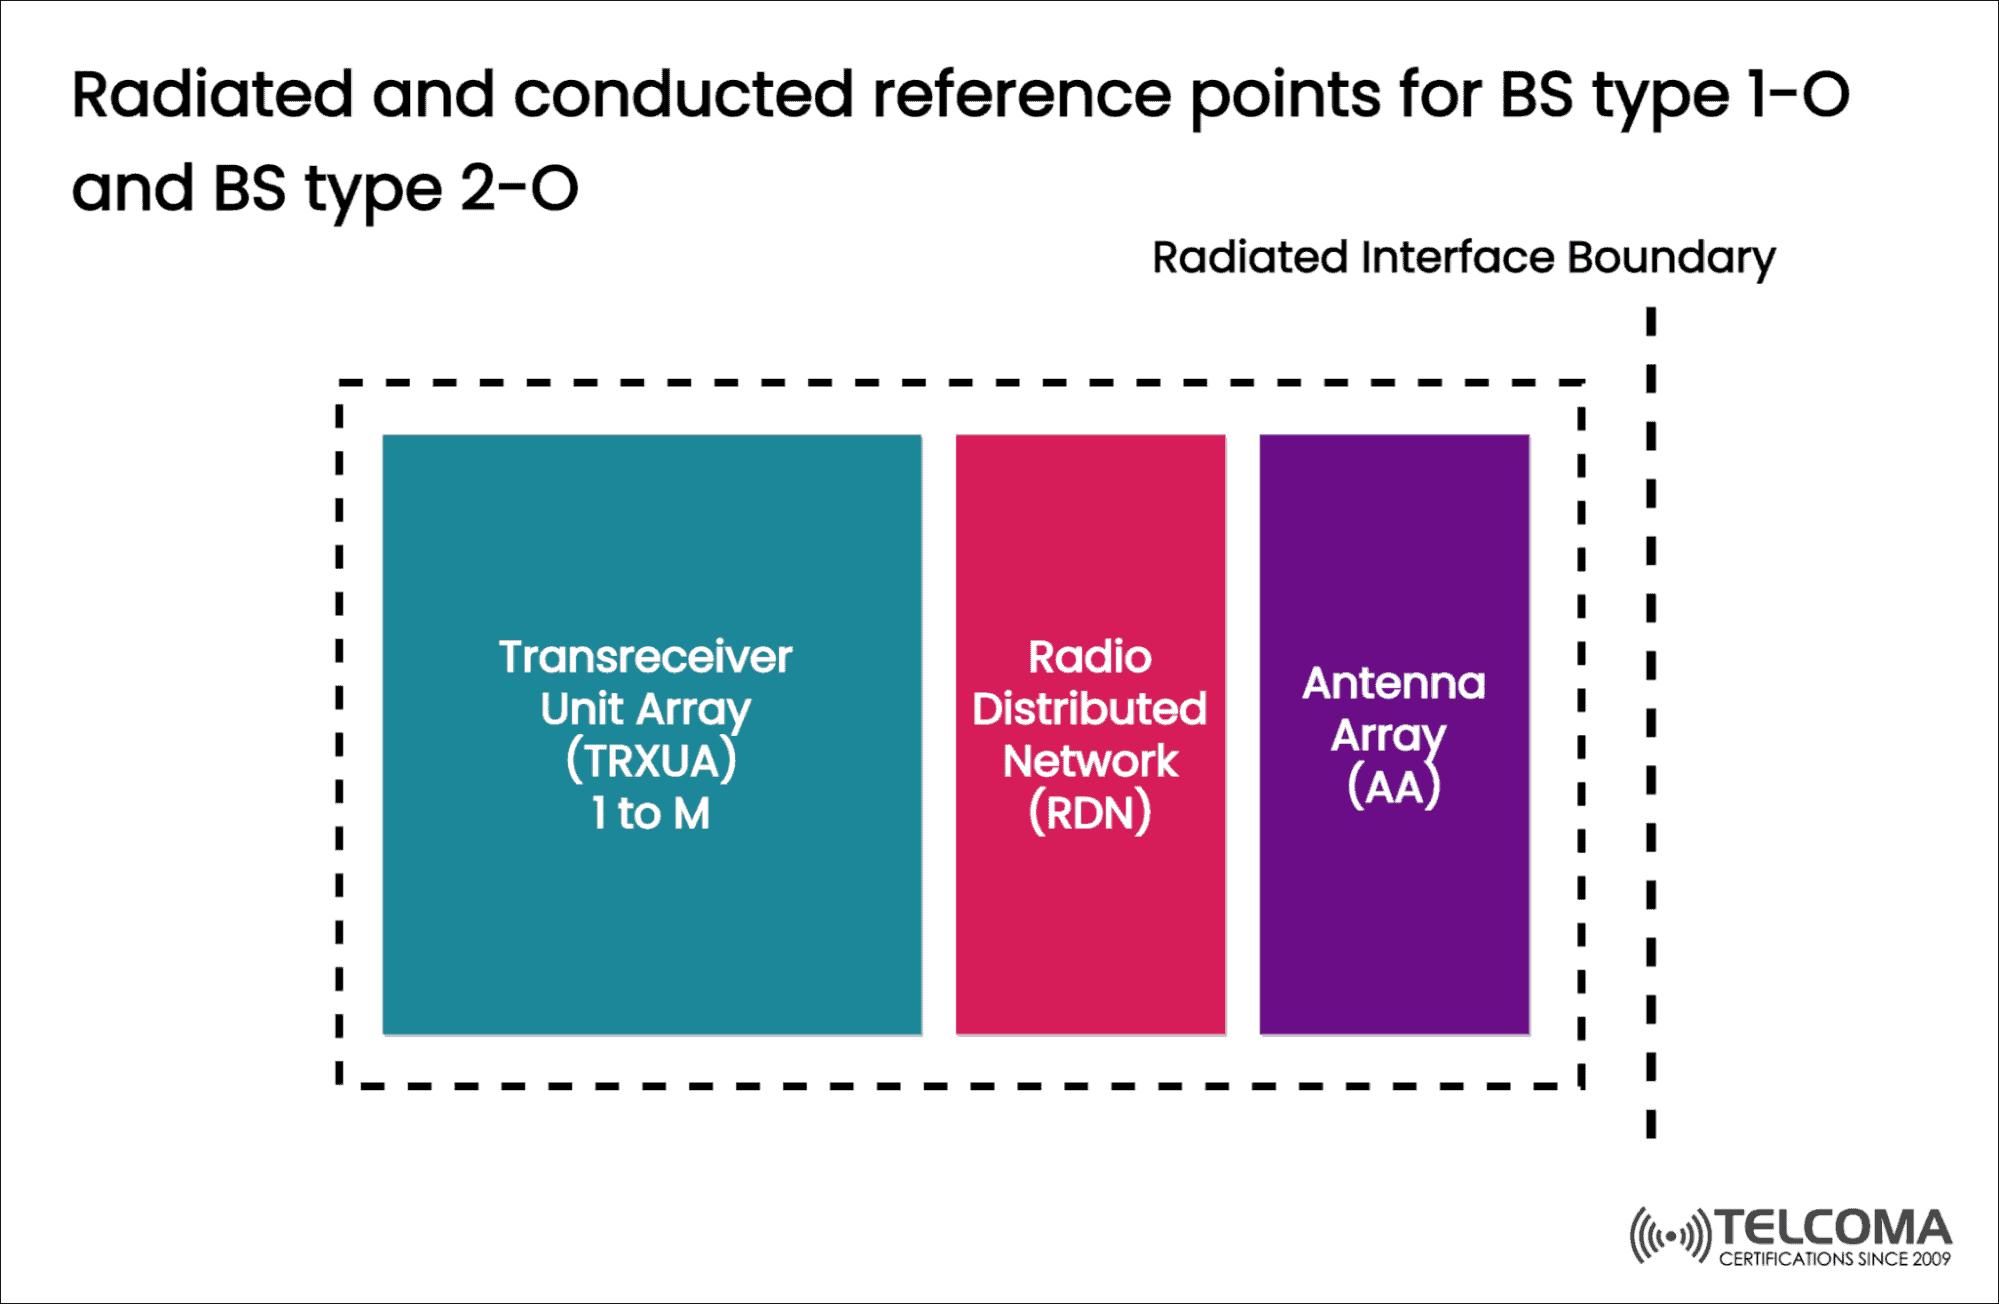 BS type 2-O reference points